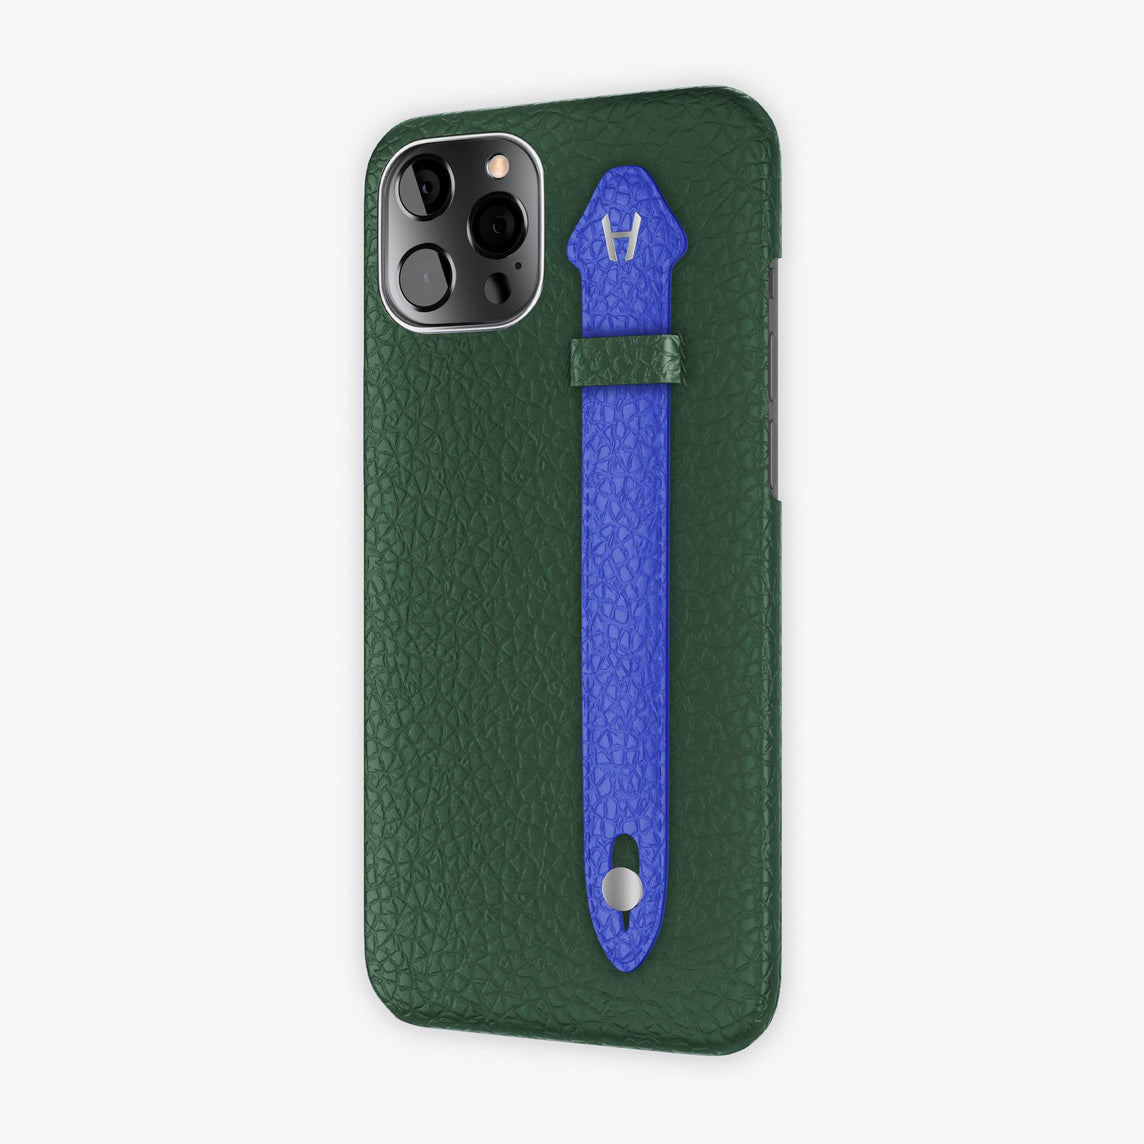 Calfskin Side Finger Case iPhone 12 Pro Max | Green/Peony Blue - Stainless Steel